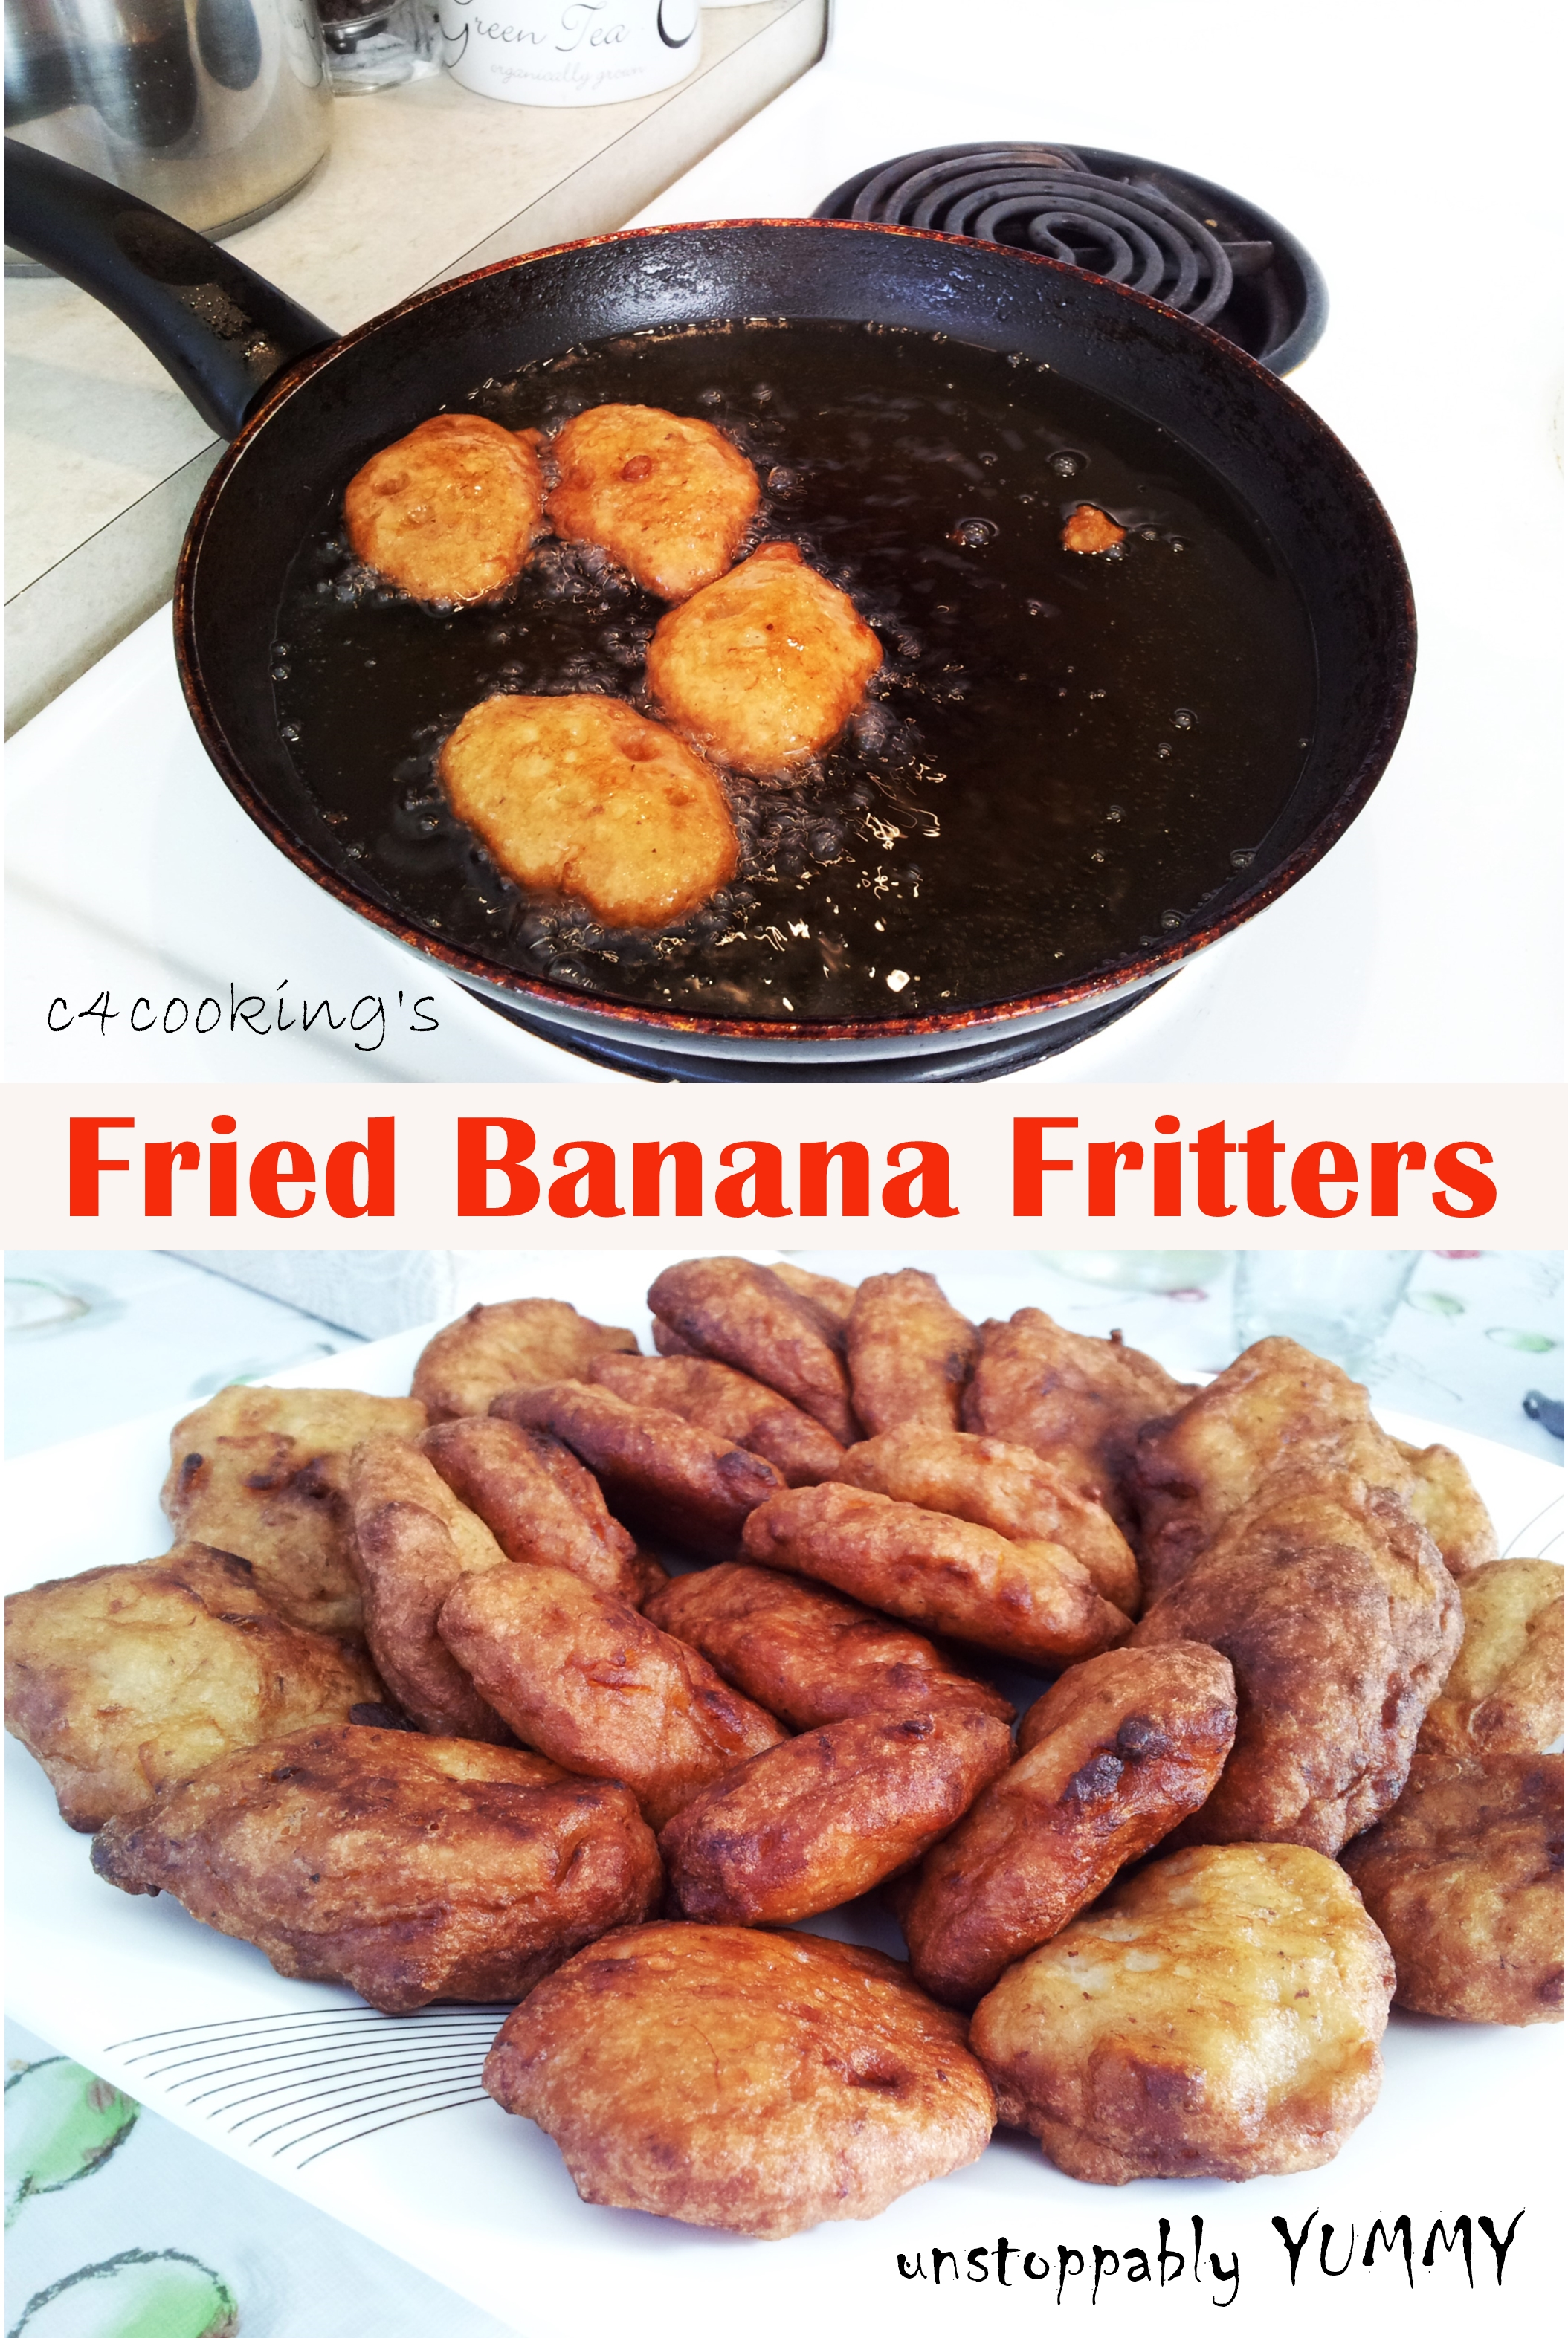 fried banana fritters c4cooking